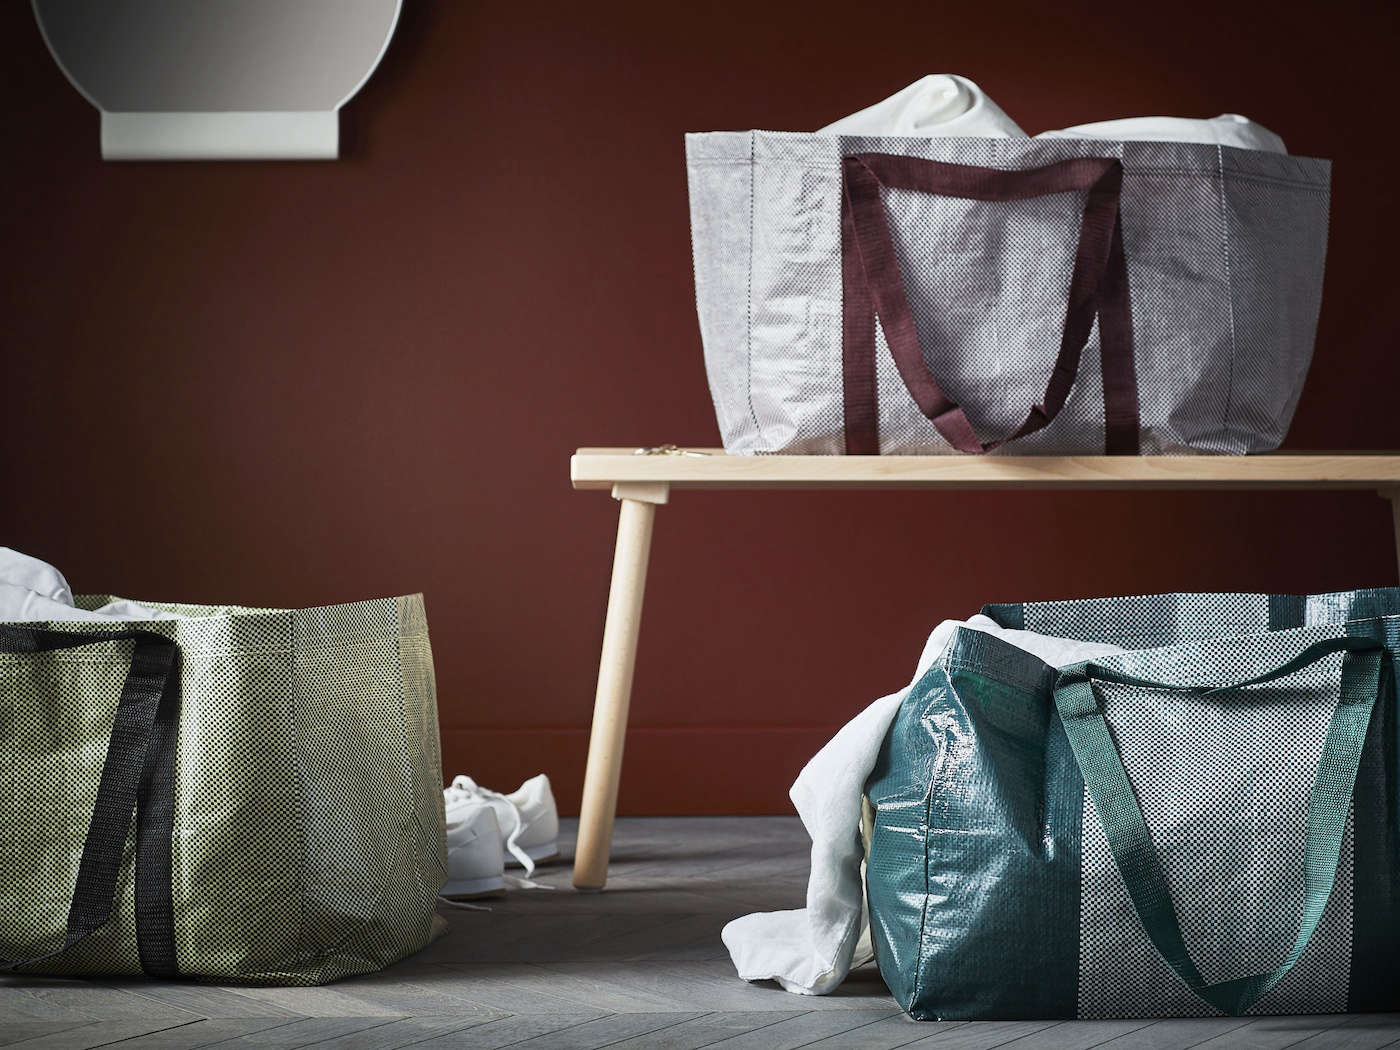 Hayu0027s take on the iconic Ikea blue bag the Ypperlig Shopping Bag is made & New from Ikea: The Ypperlig Collection a Collaboration with Hay ...